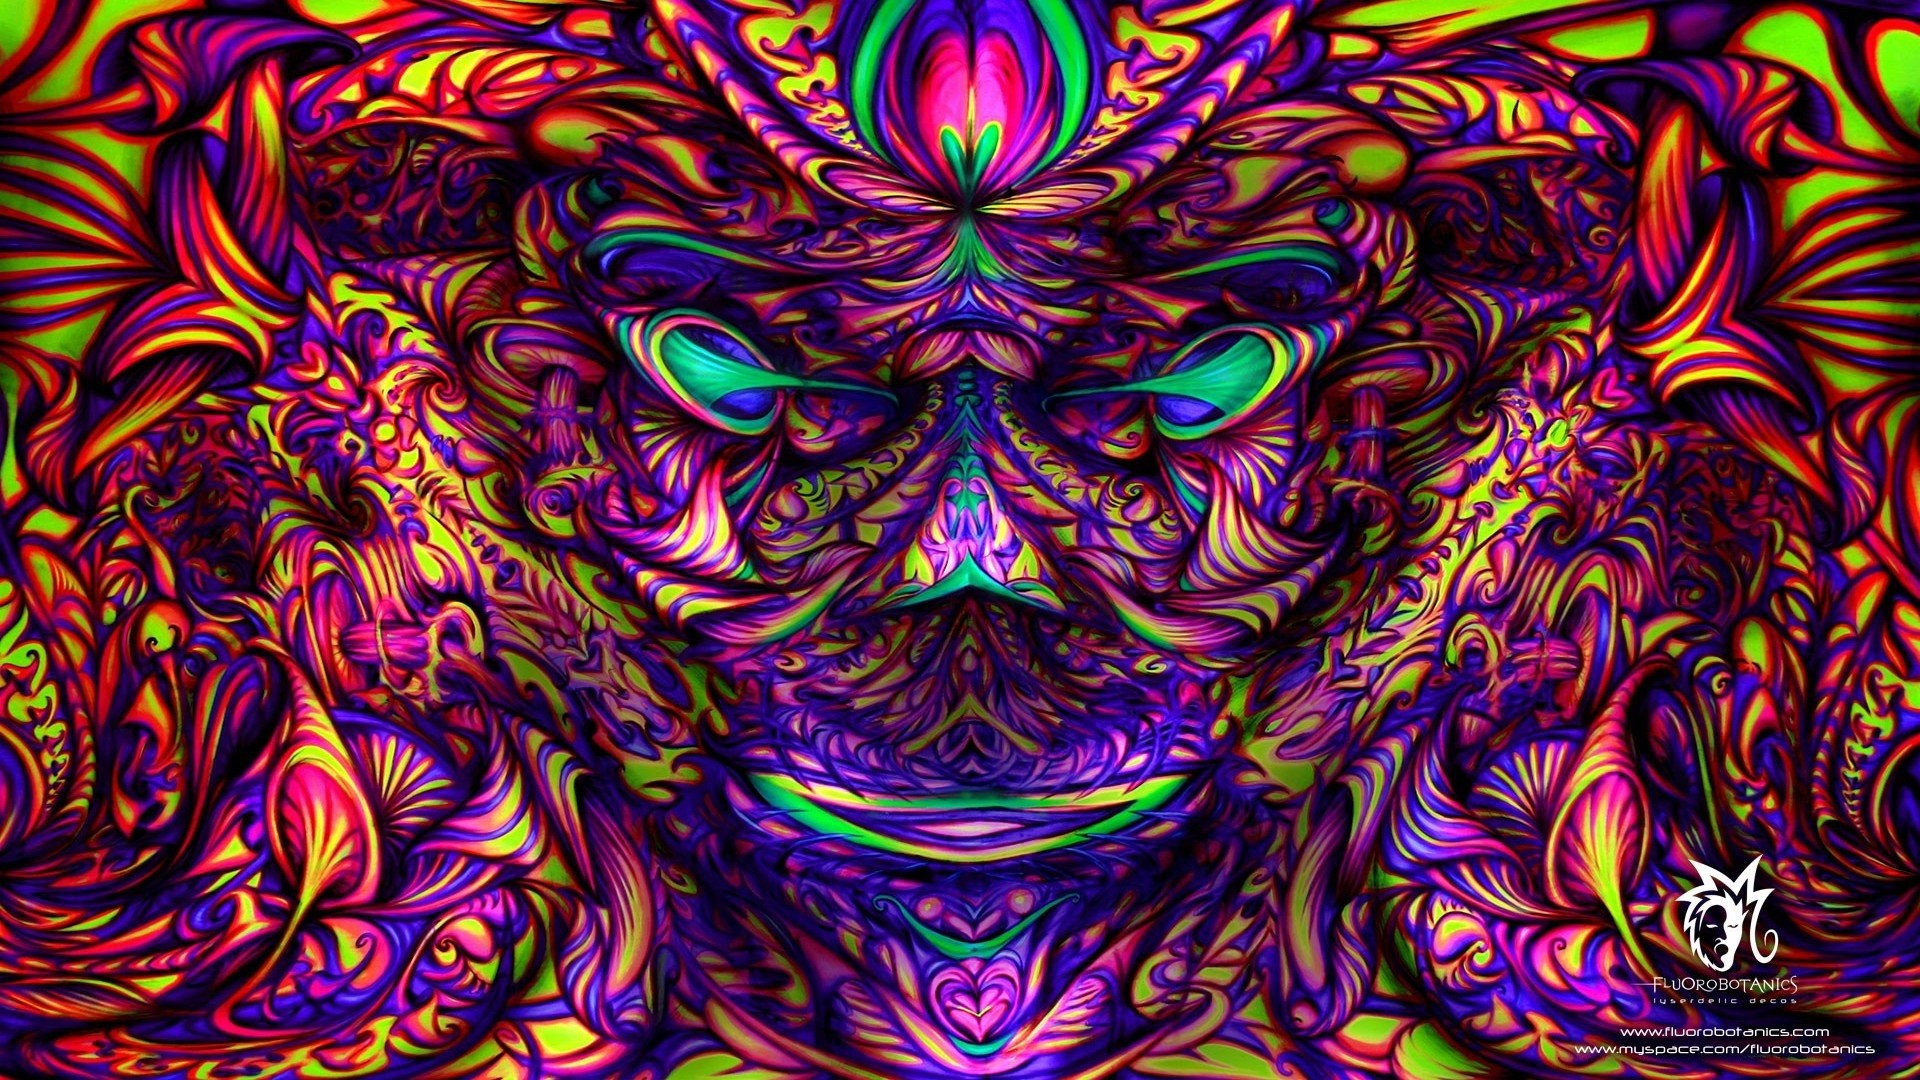 Trippy nature wallpaper 62 images - Trippy nature wallpaper ...